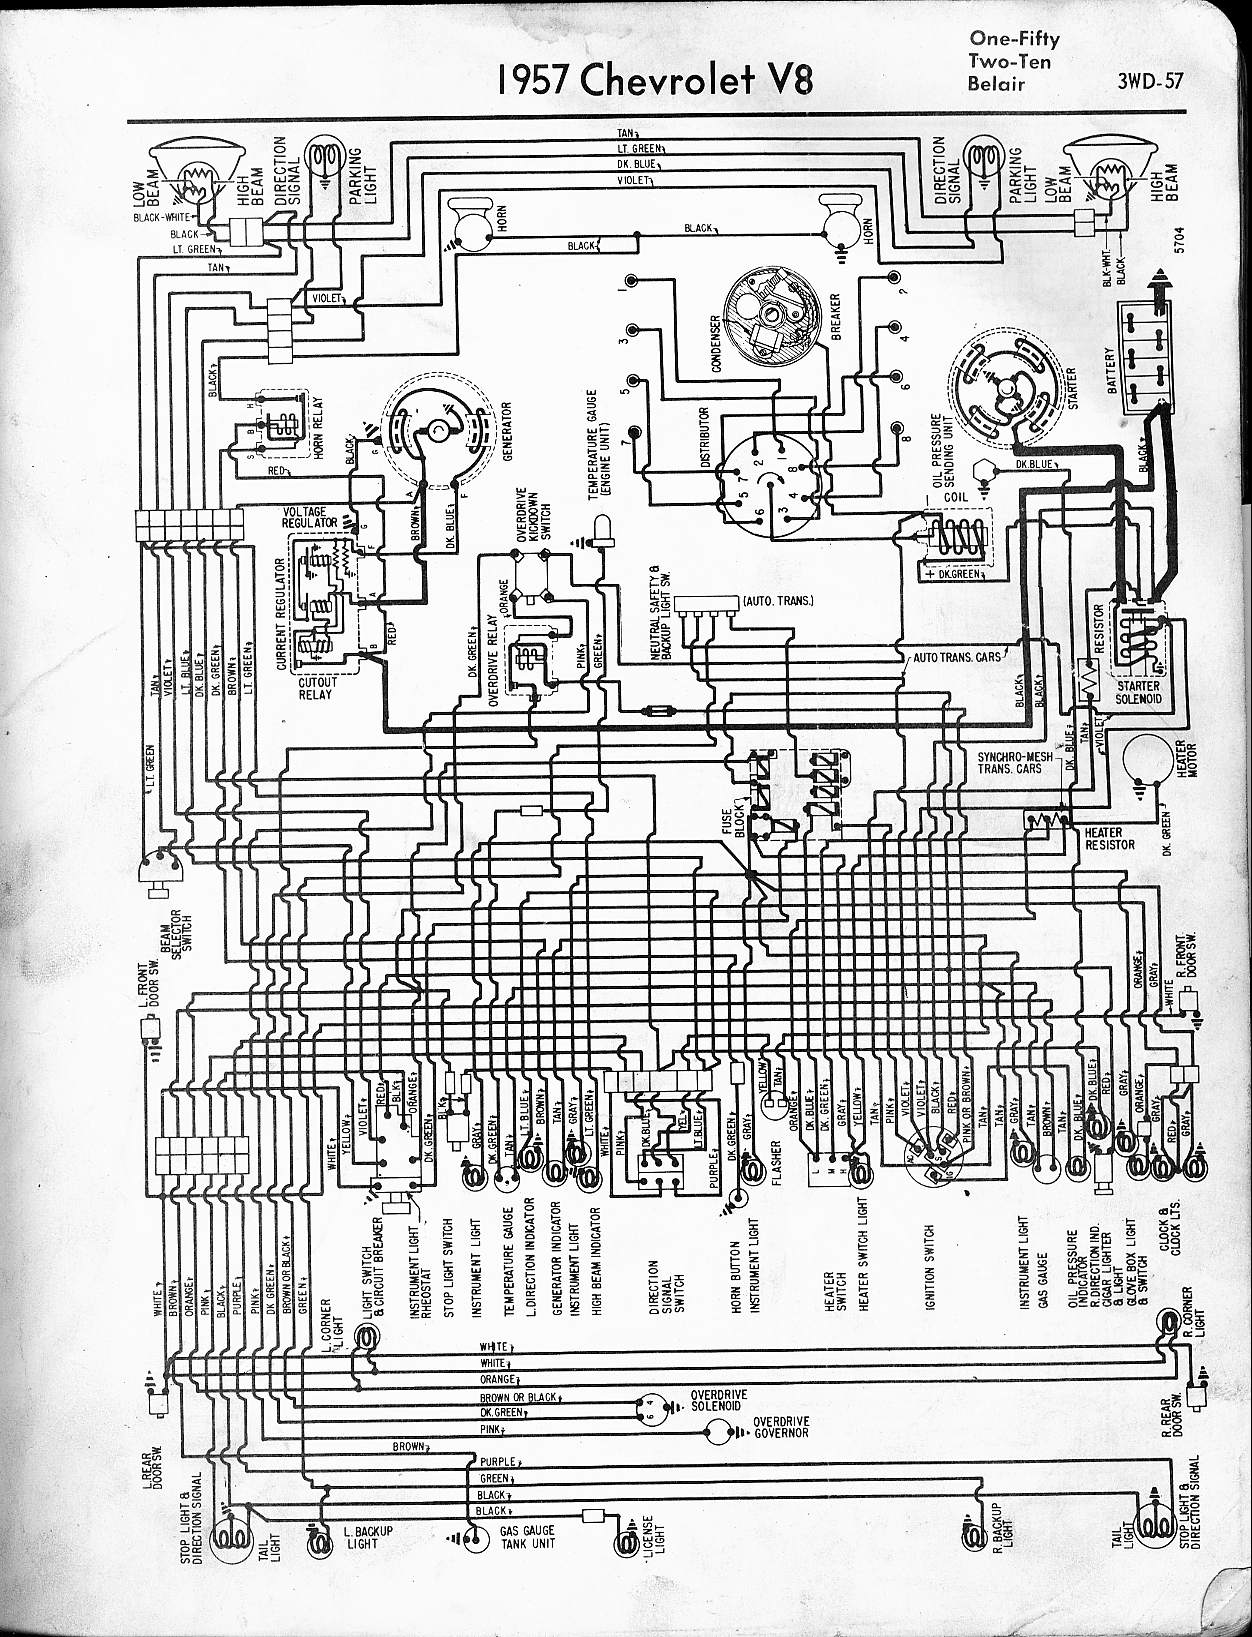 MWireChev57_3WD 057 57 65 chevy wiring diagrams 1957 chevy truck wiring diagram at fashall.co